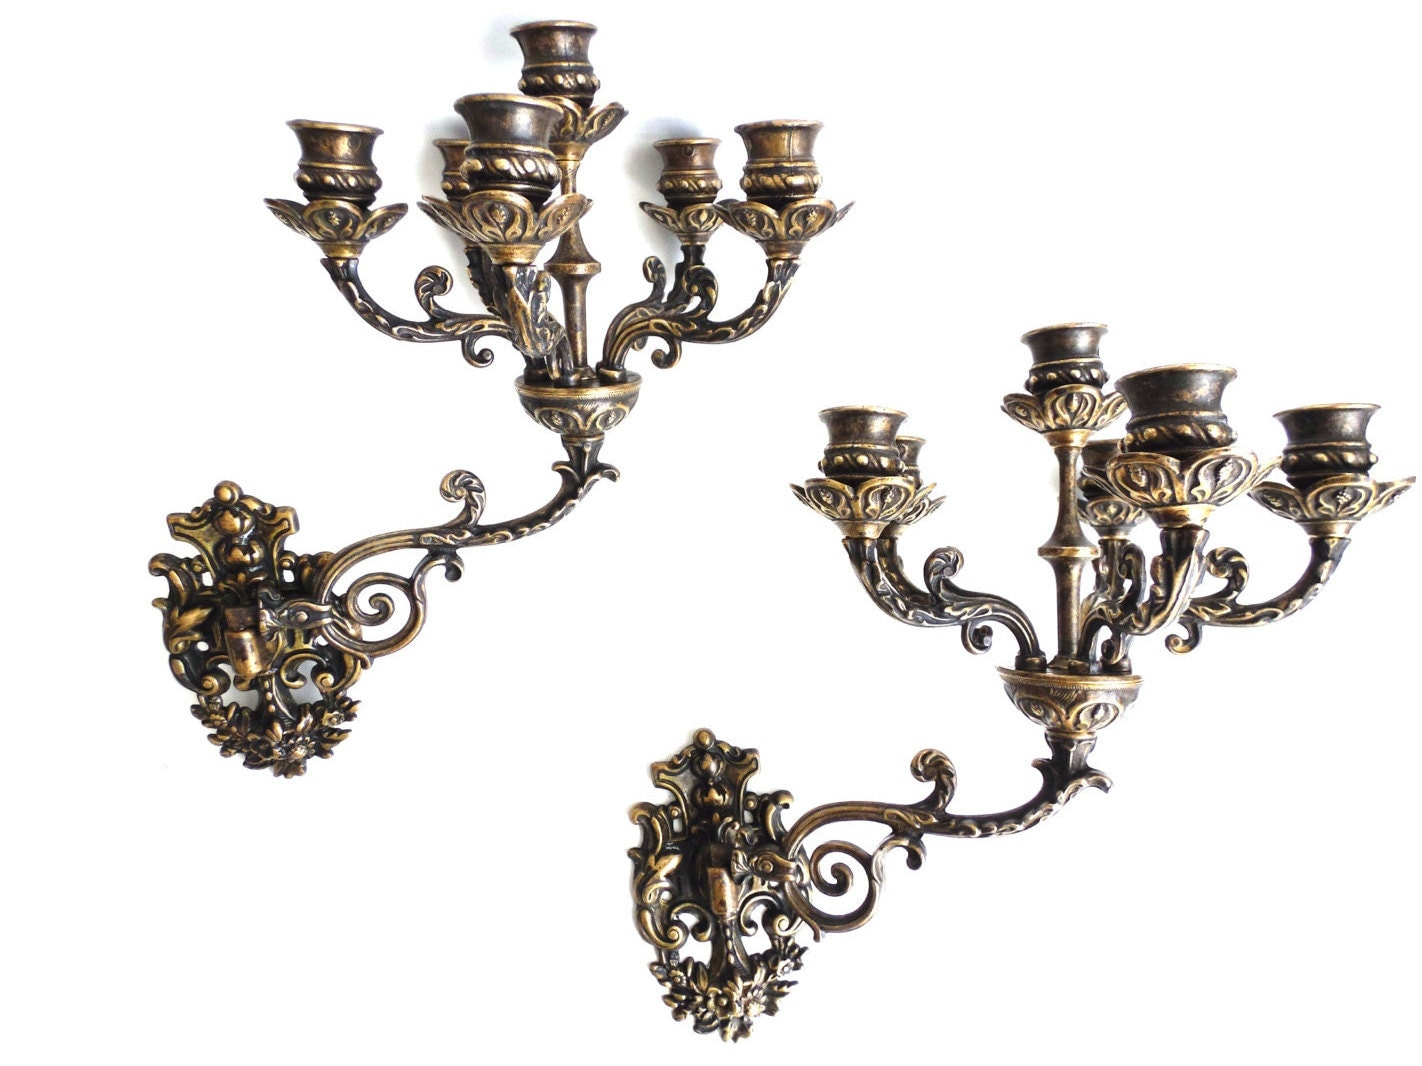 Solid Brass Wall Sconces : Ornate wall Sconces Pair Antique Solid Brass Victorian Wall